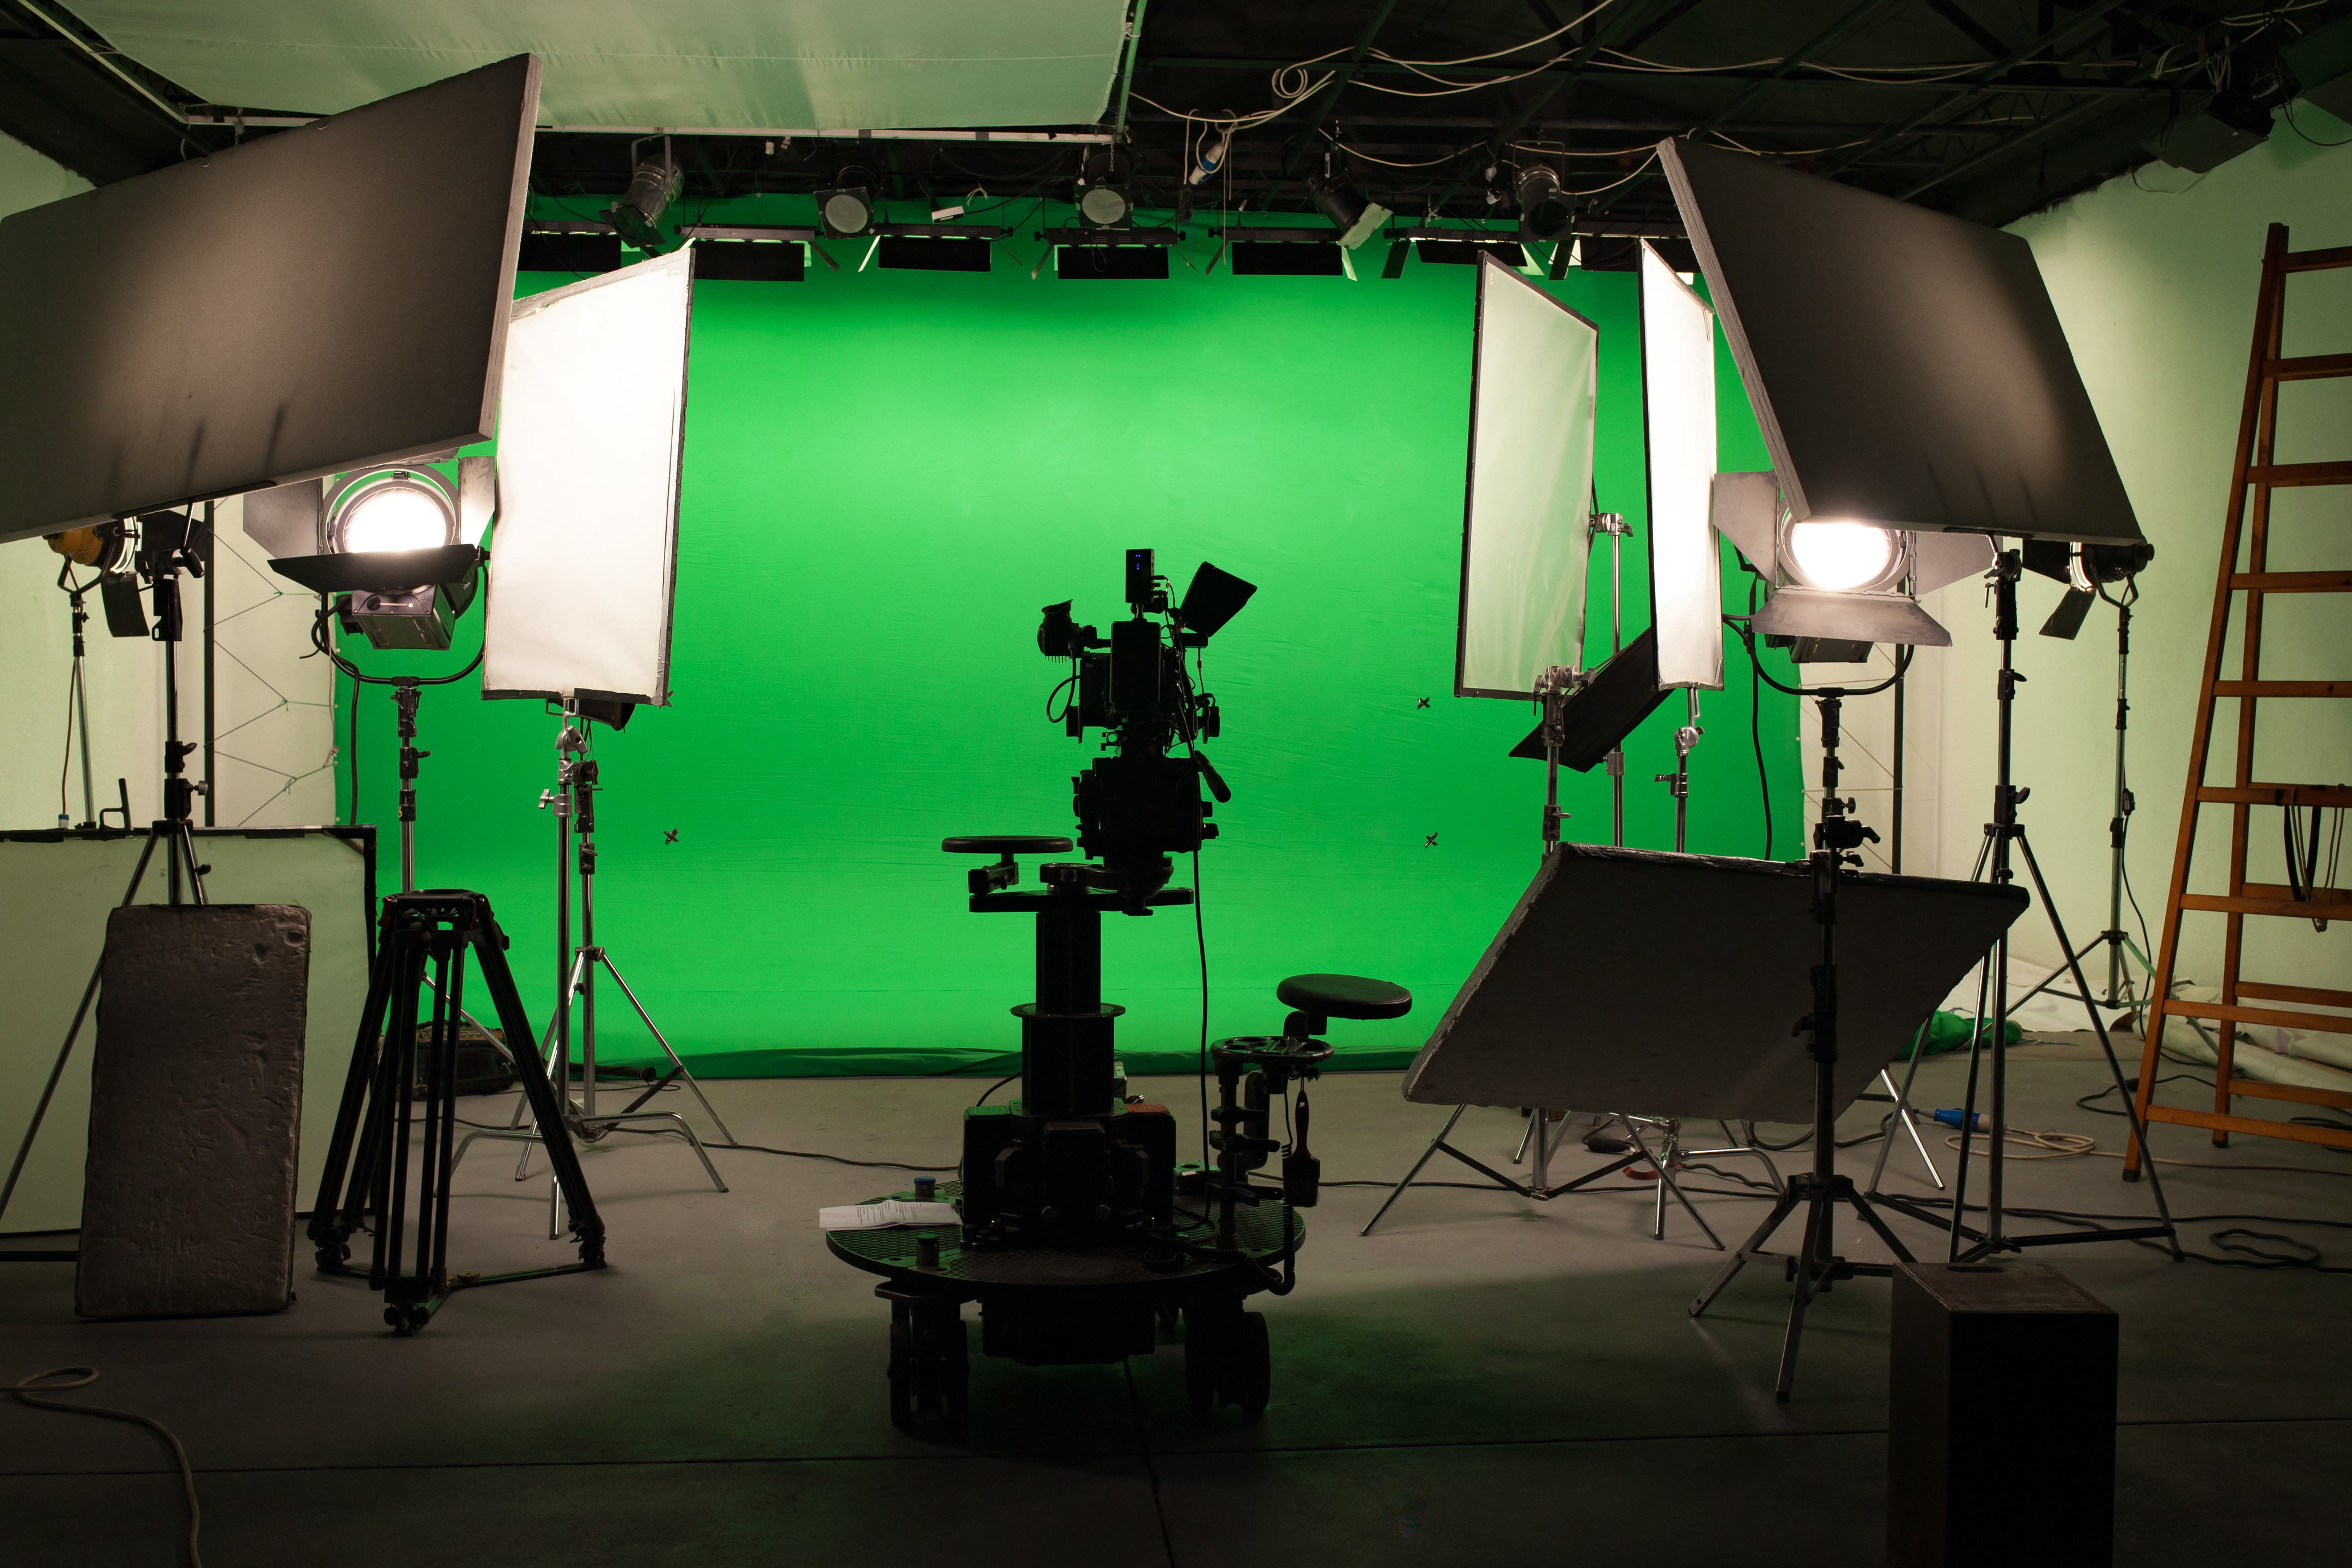 A greenscreen is set up, surrounded by high quality camera equipment and lights